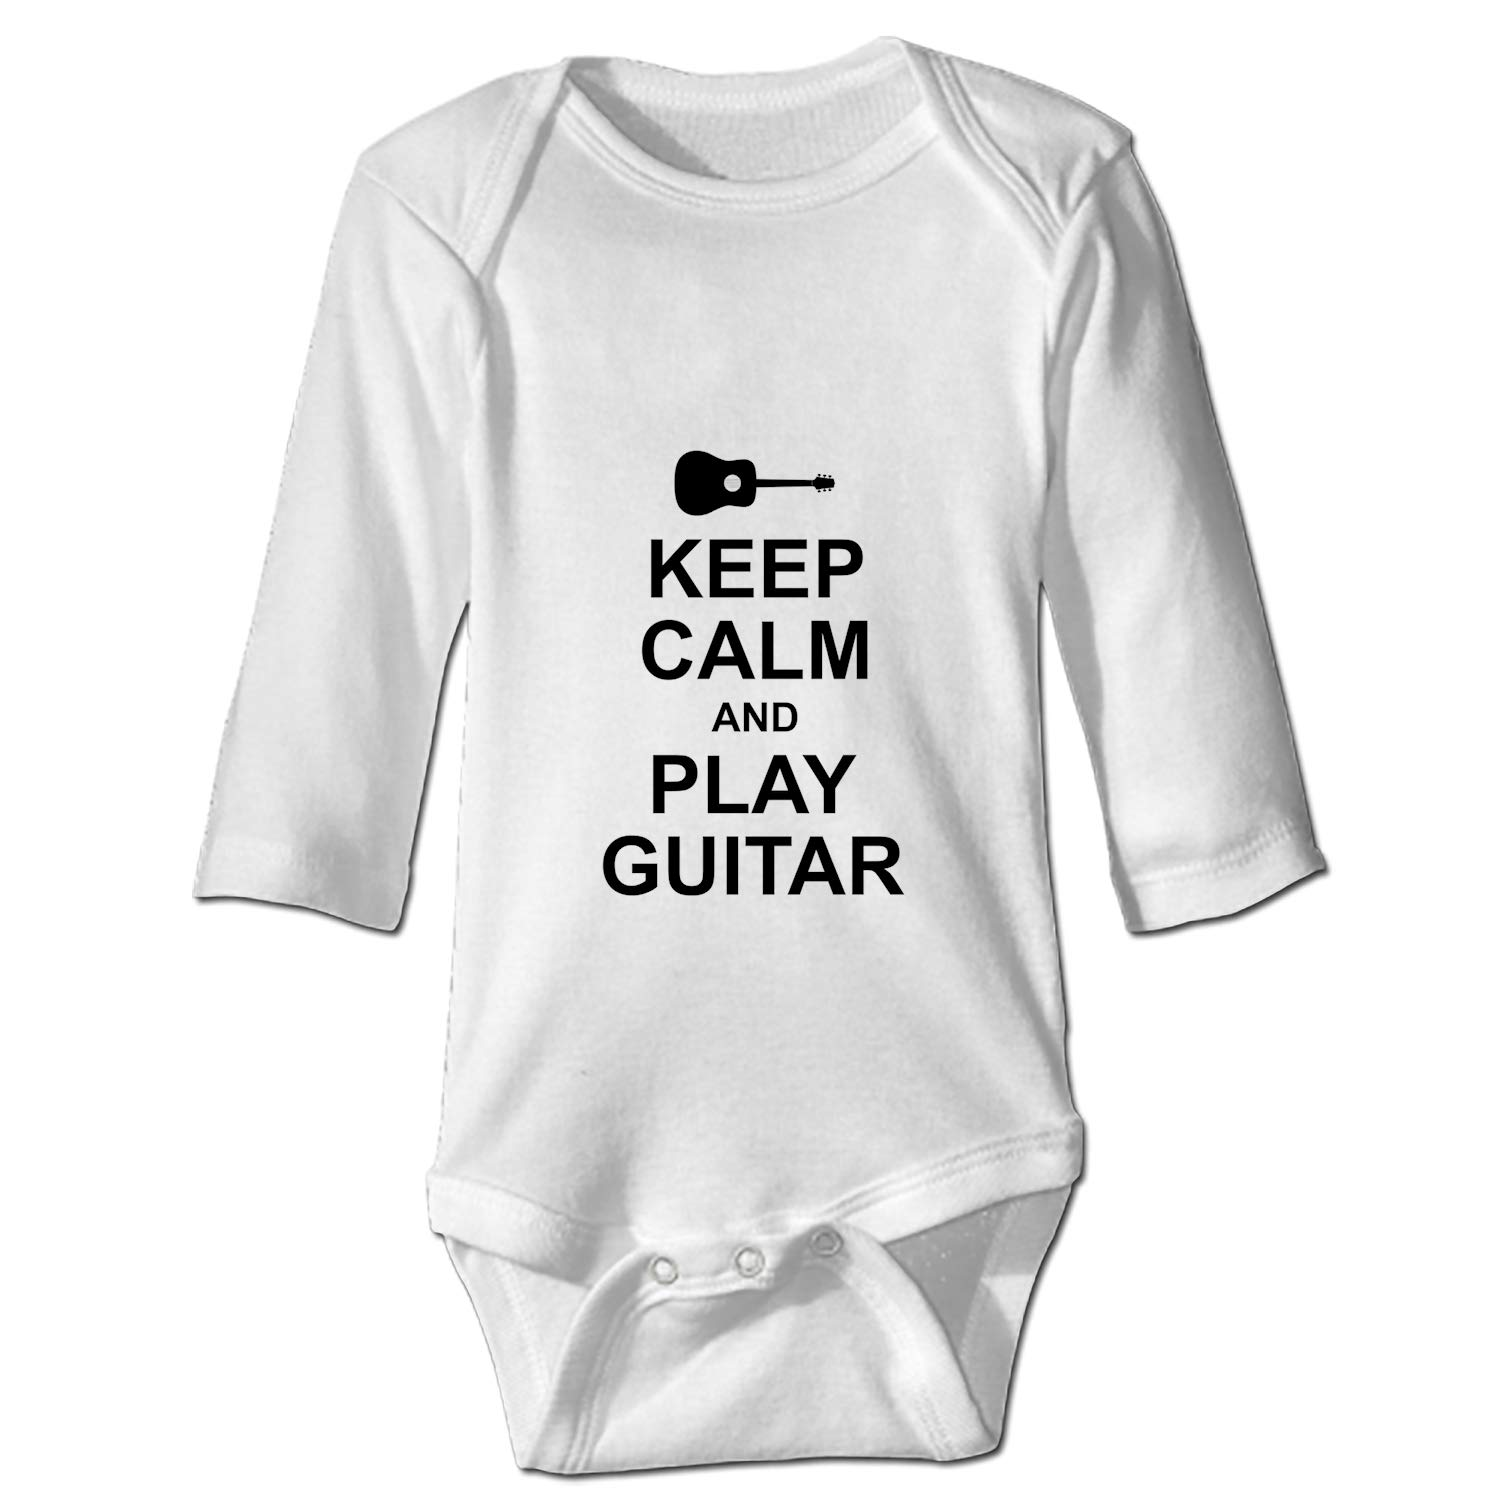 YSKHDBC Keep Calm and Play Guitar Printed Personalized Infant Bodysuit One-Piece